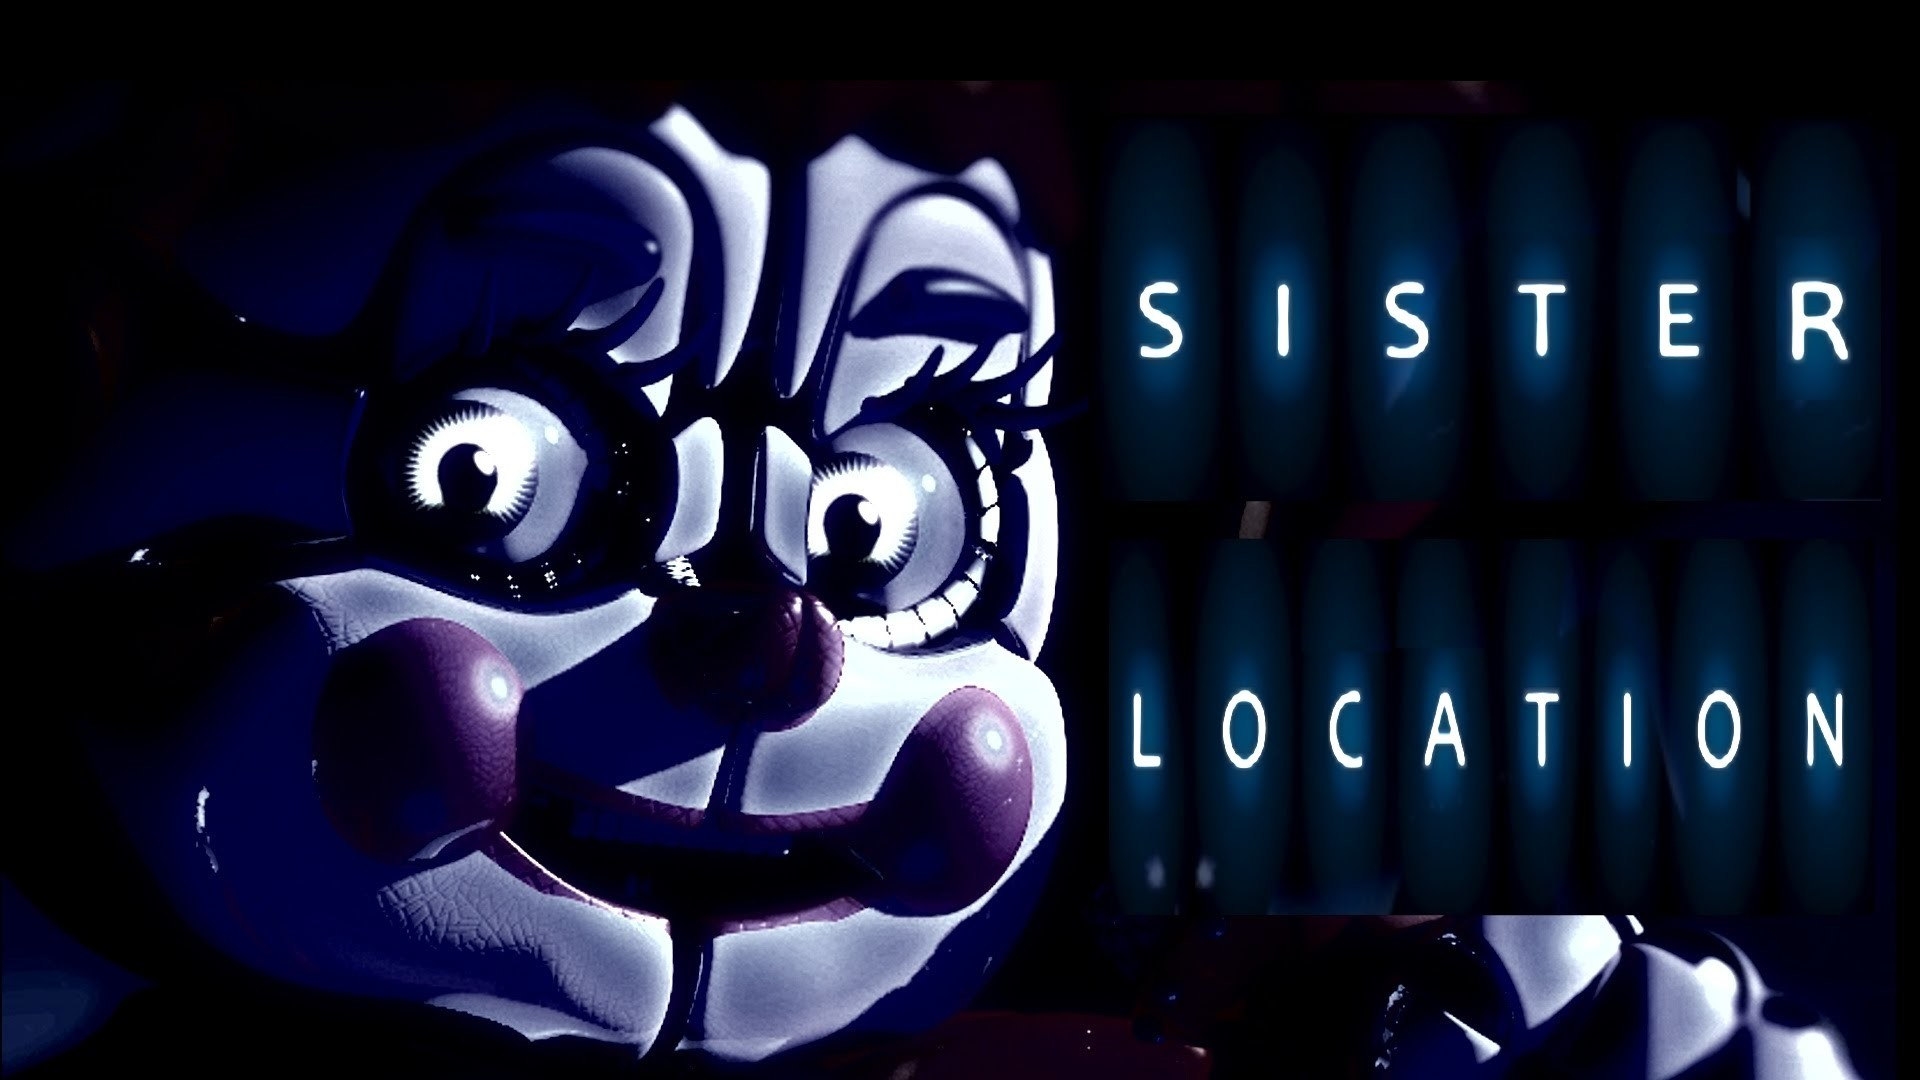 1920x1080 Five Nights at Freddy's Sister Location TEASER TRAILER